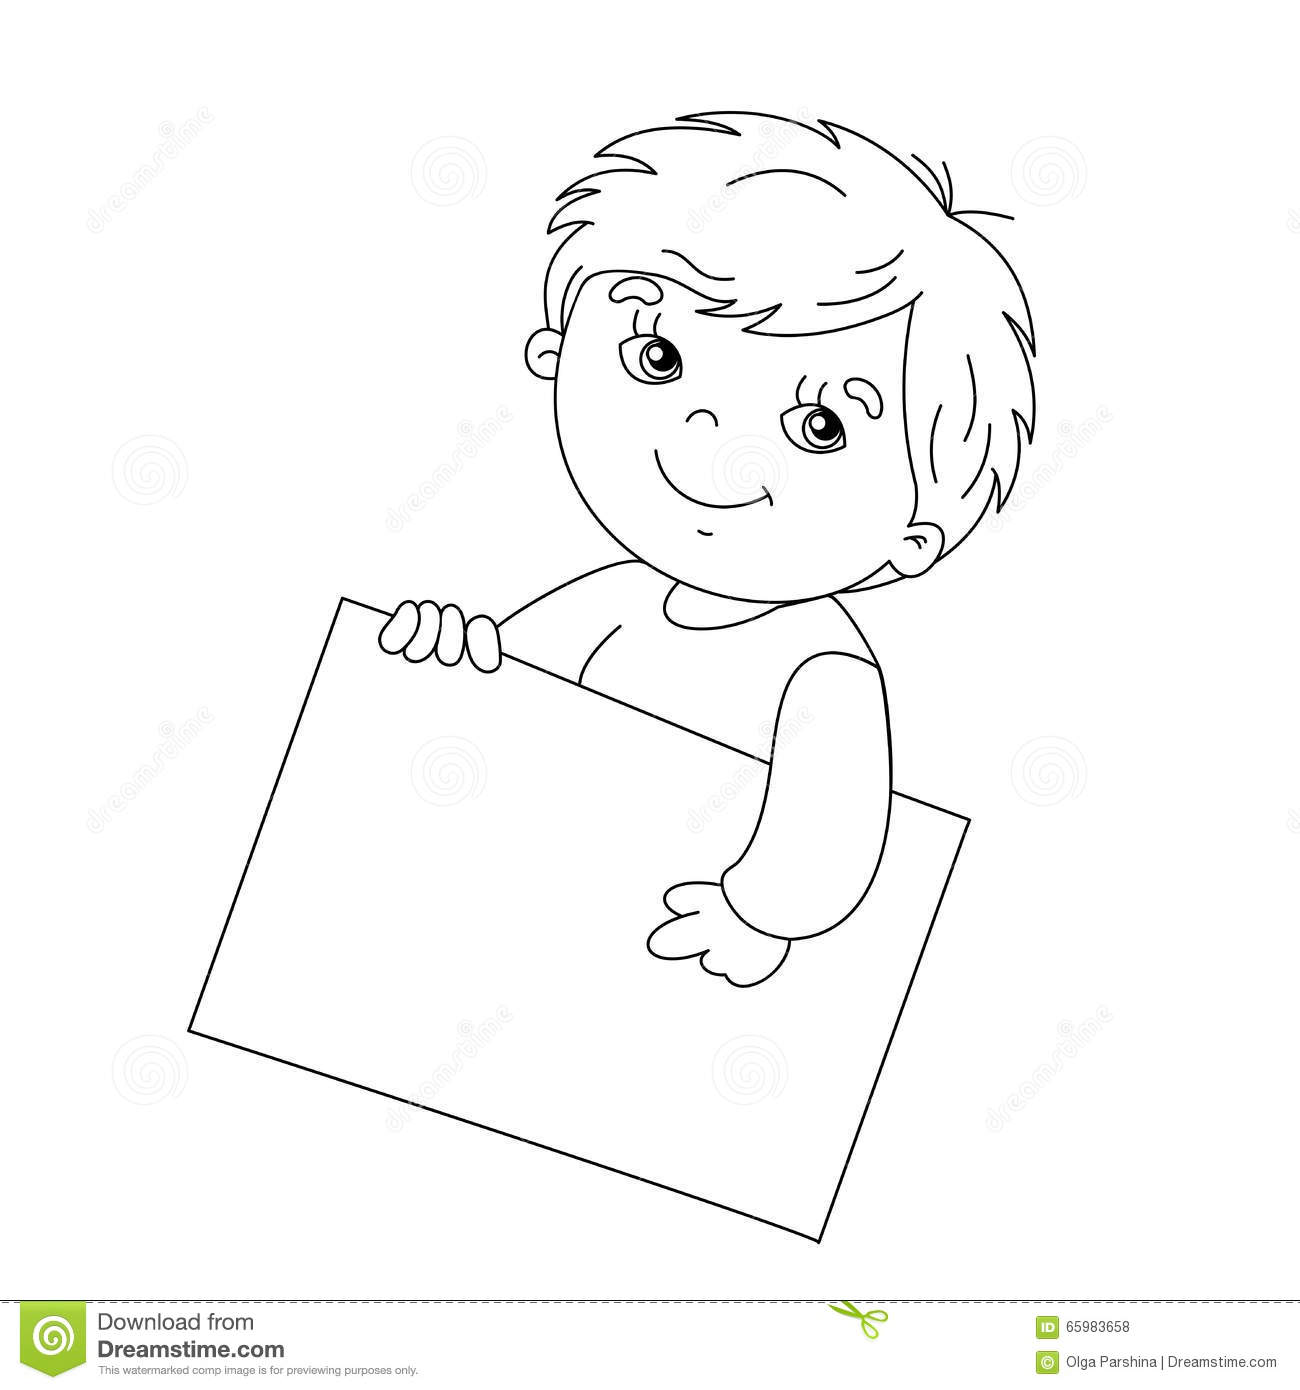 Coloring page outline of cute boy holding a sign stock for Outline of a boy and girl coloring pages